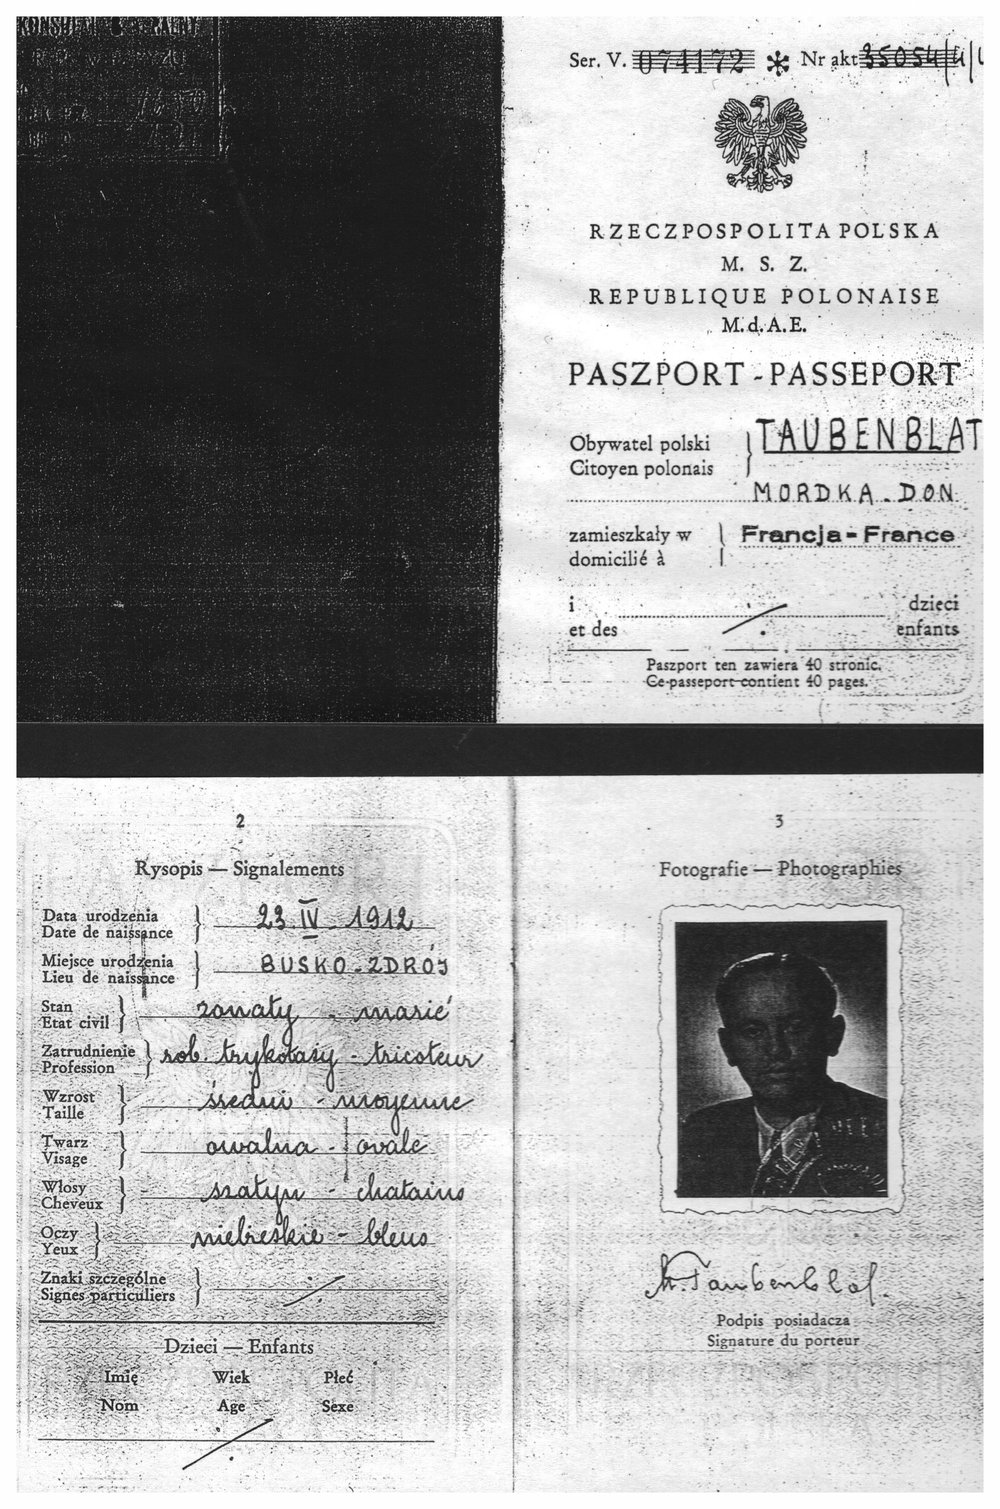 My father's Polish passport - Mordka Taubenblat